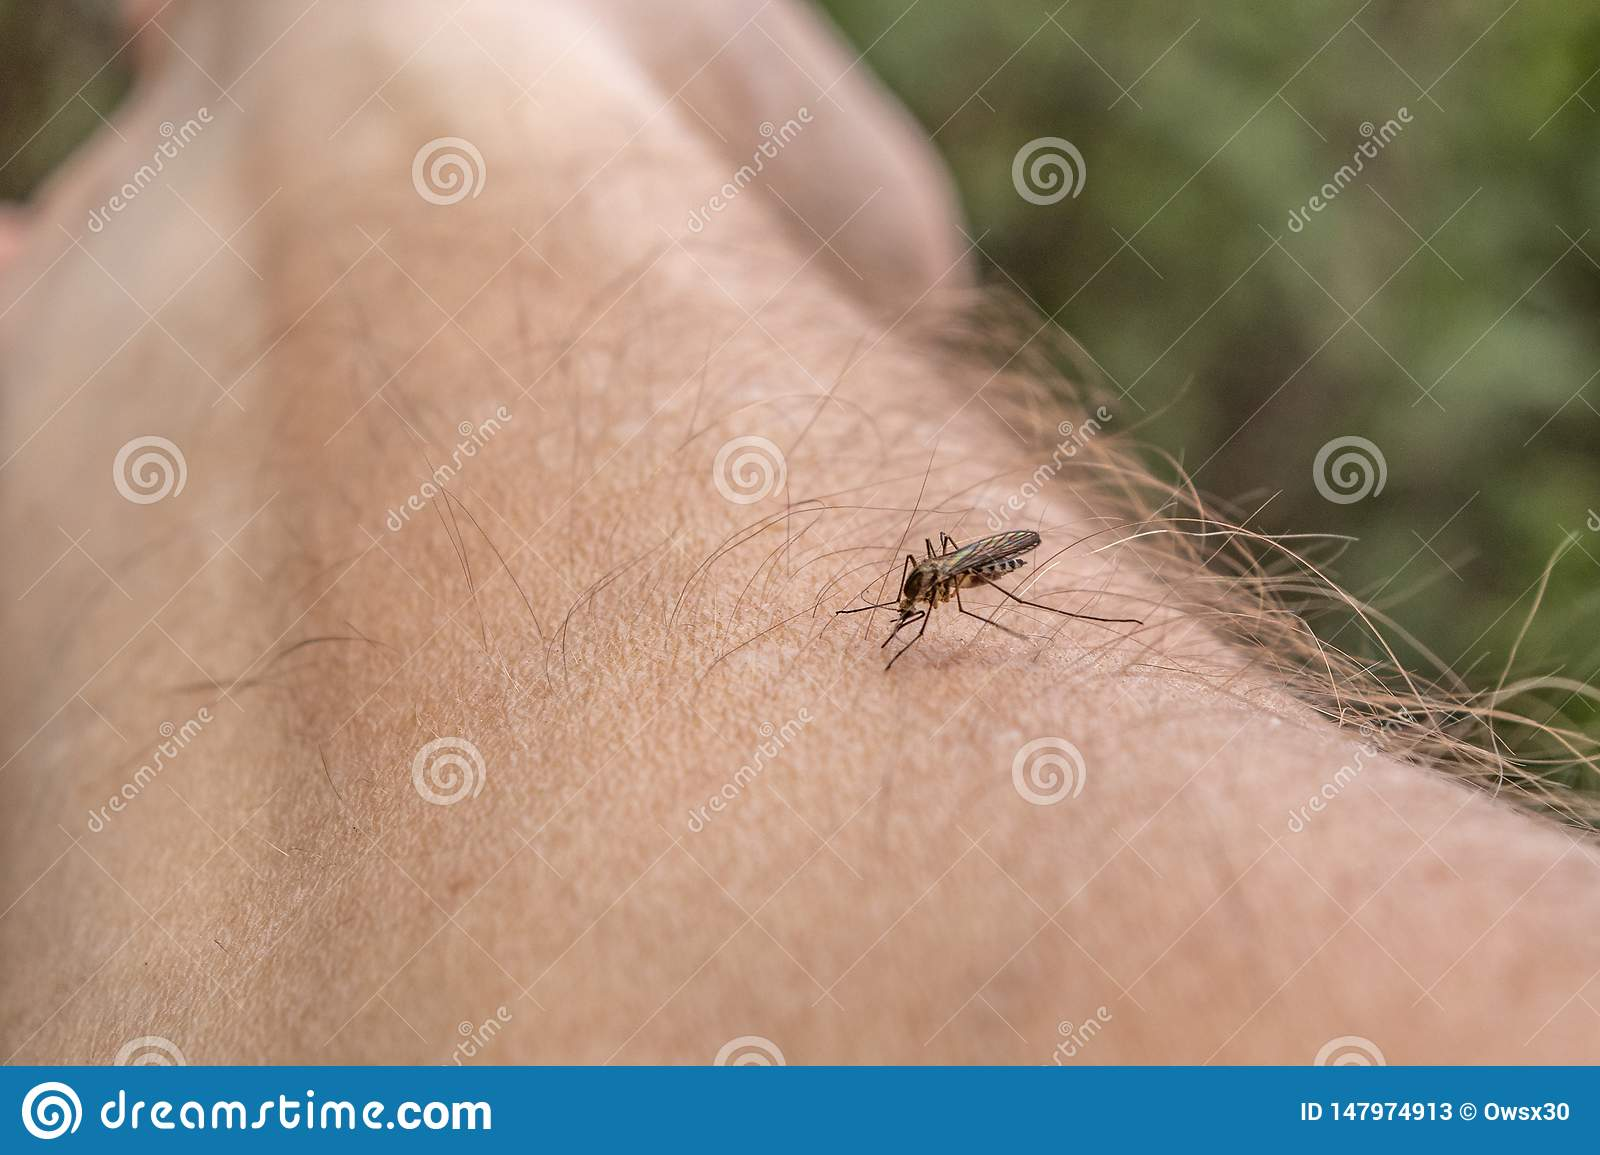 One mosquito sits on the hand, pierces the skin and sucks human blood. Causes the disease malaria. Mosquitoes are dangerous